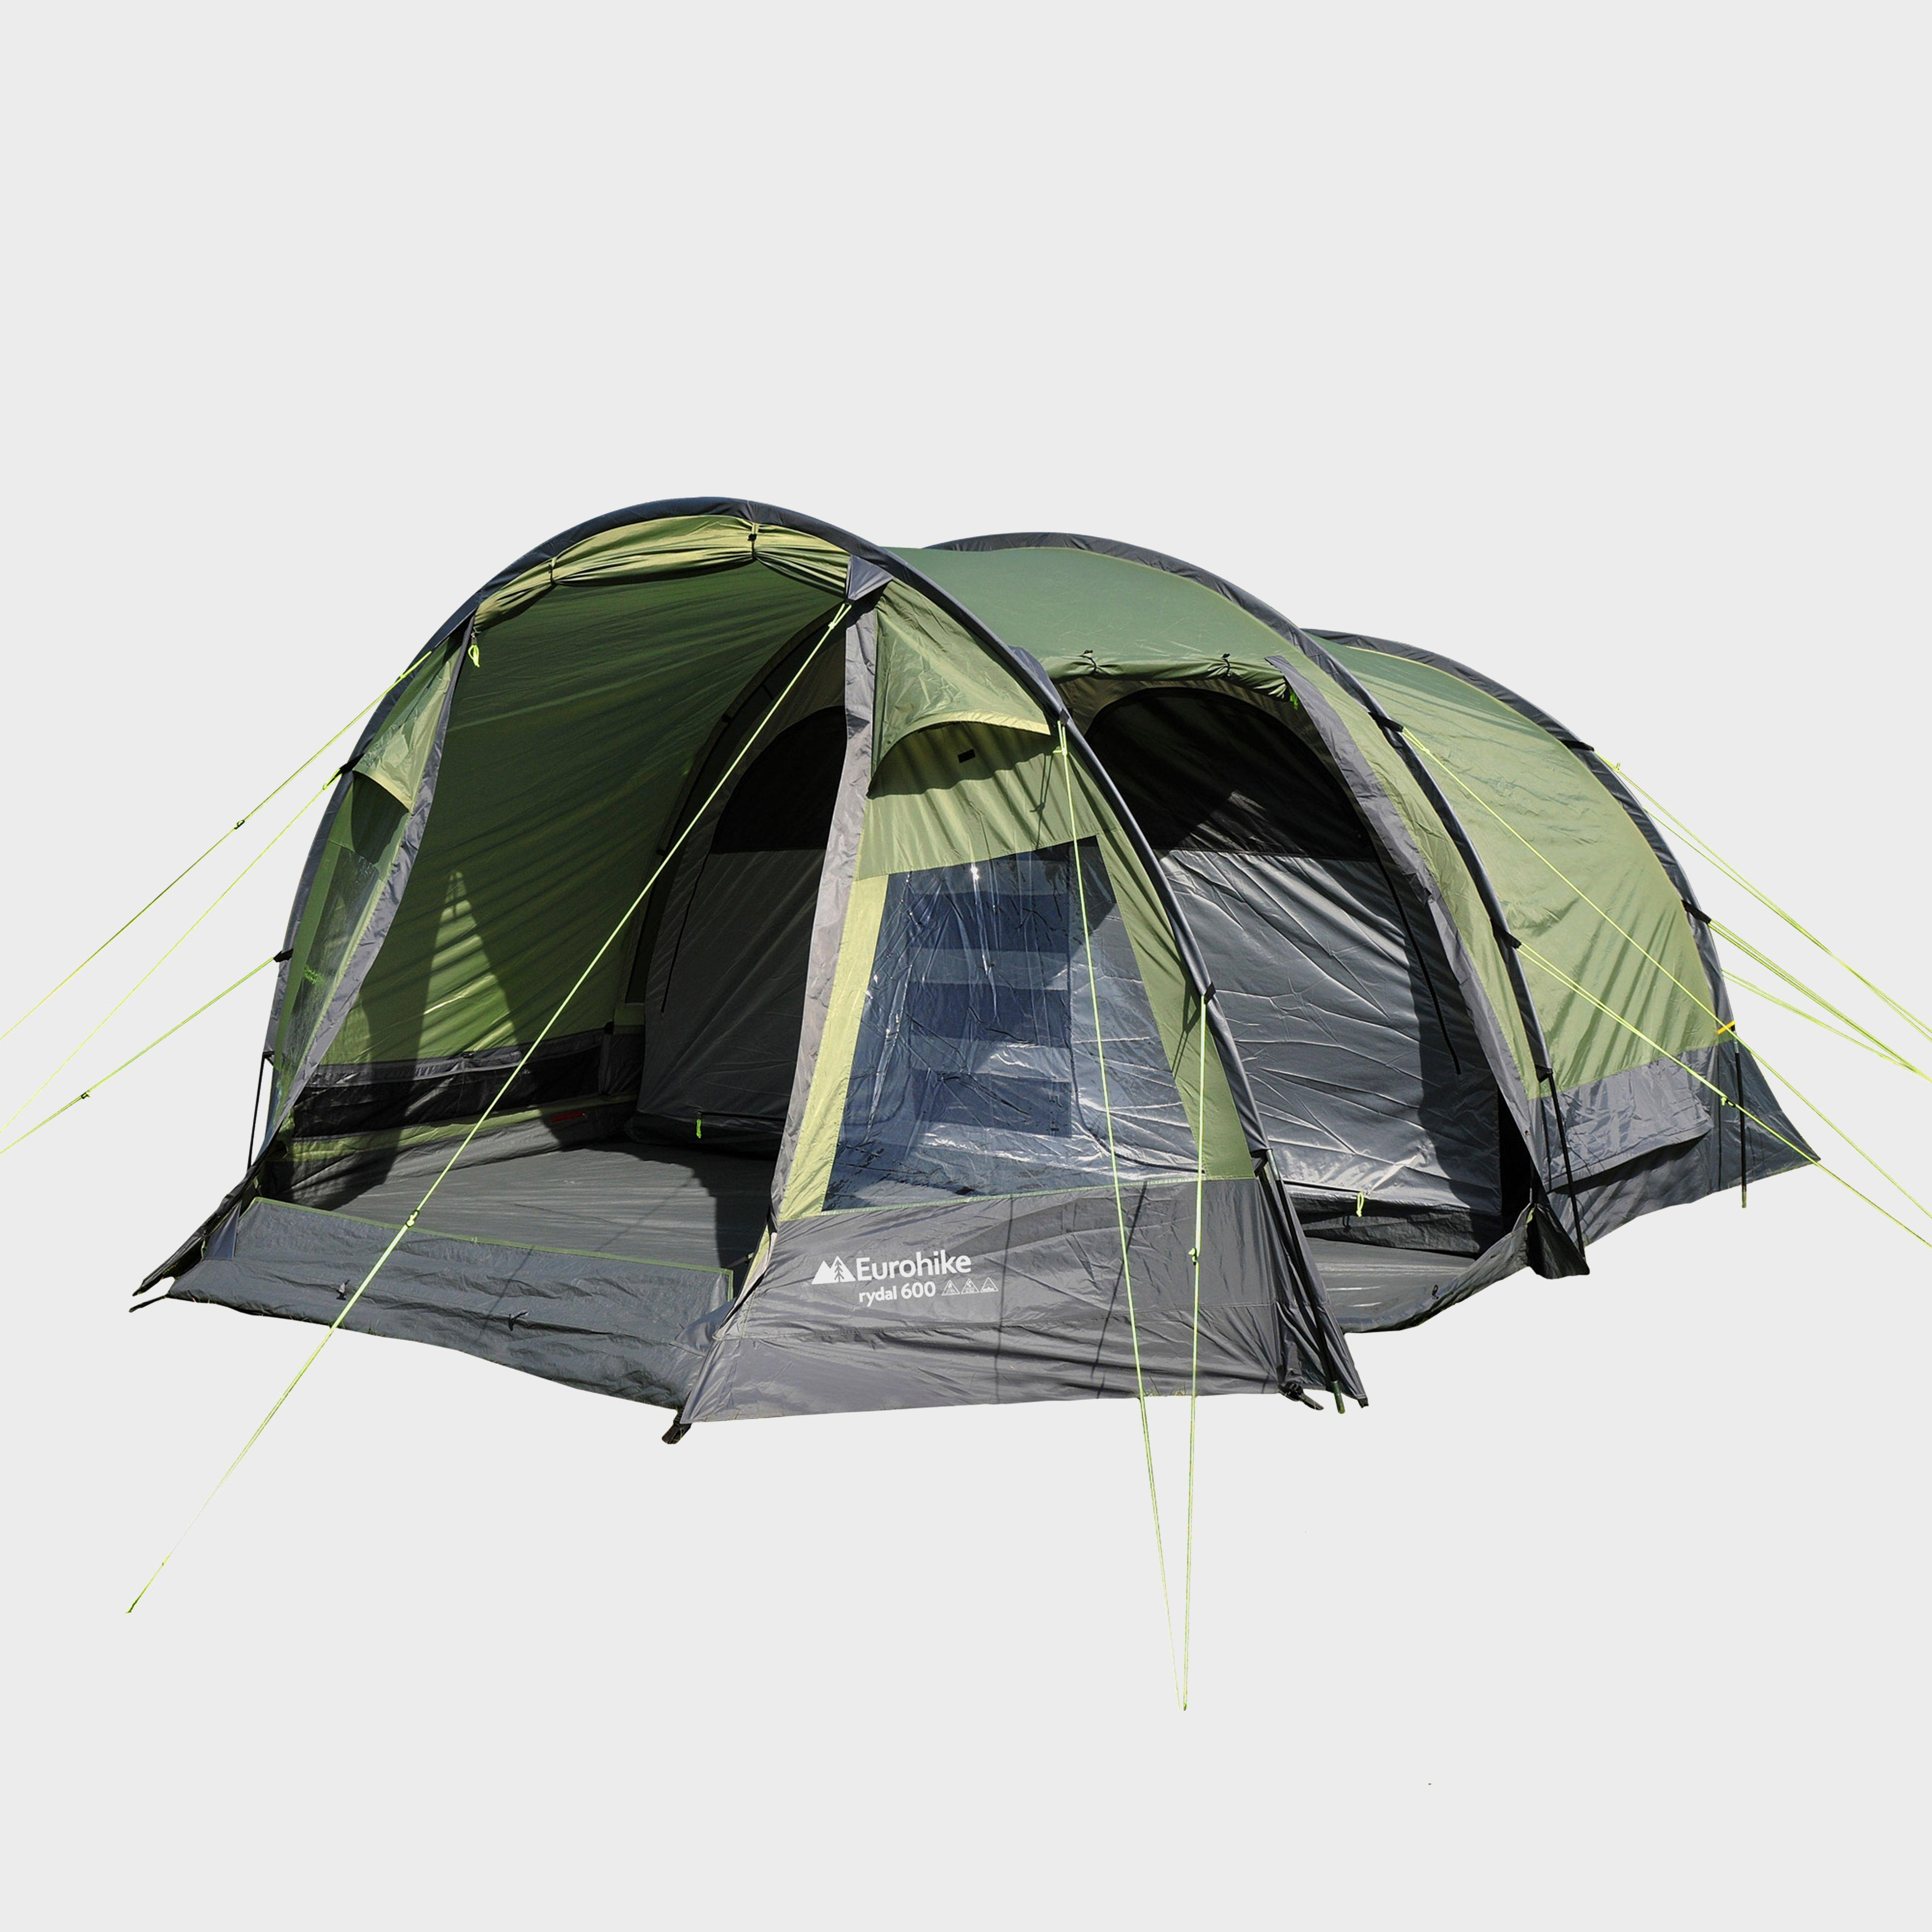 EUROHIKE Rydal 600 6 Person Tent : pop up tent 6 person - memphite.com